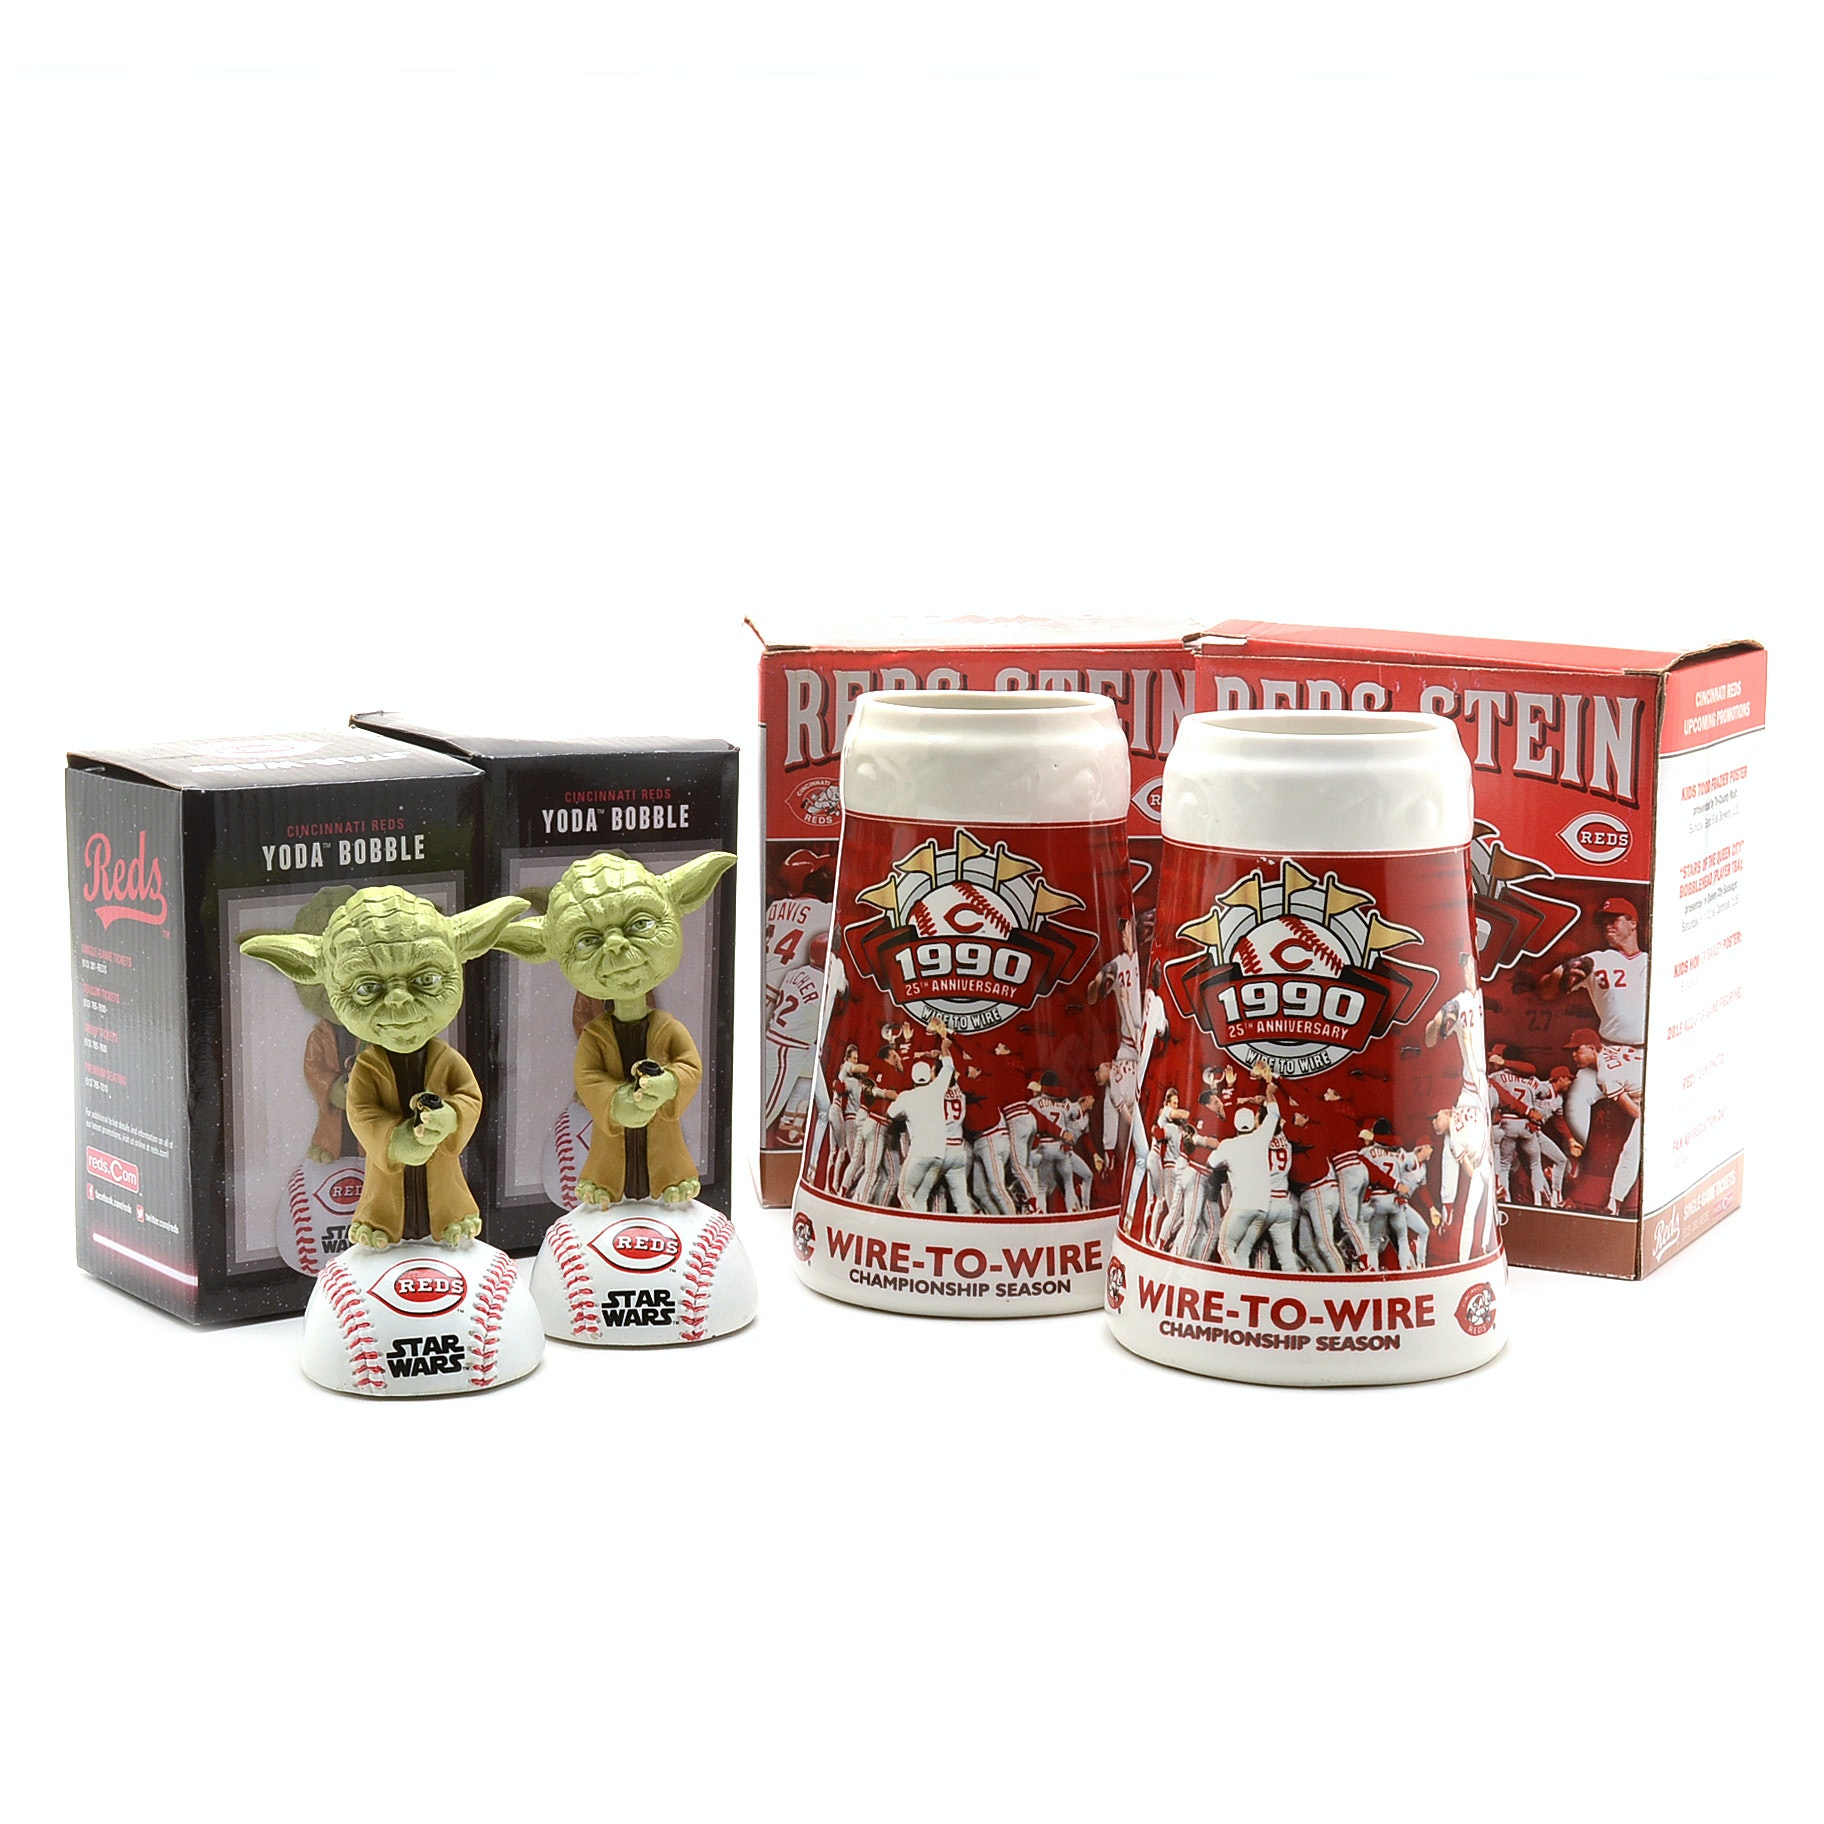 Reds Yoda Bobble Head Dolls and 1990 Steins